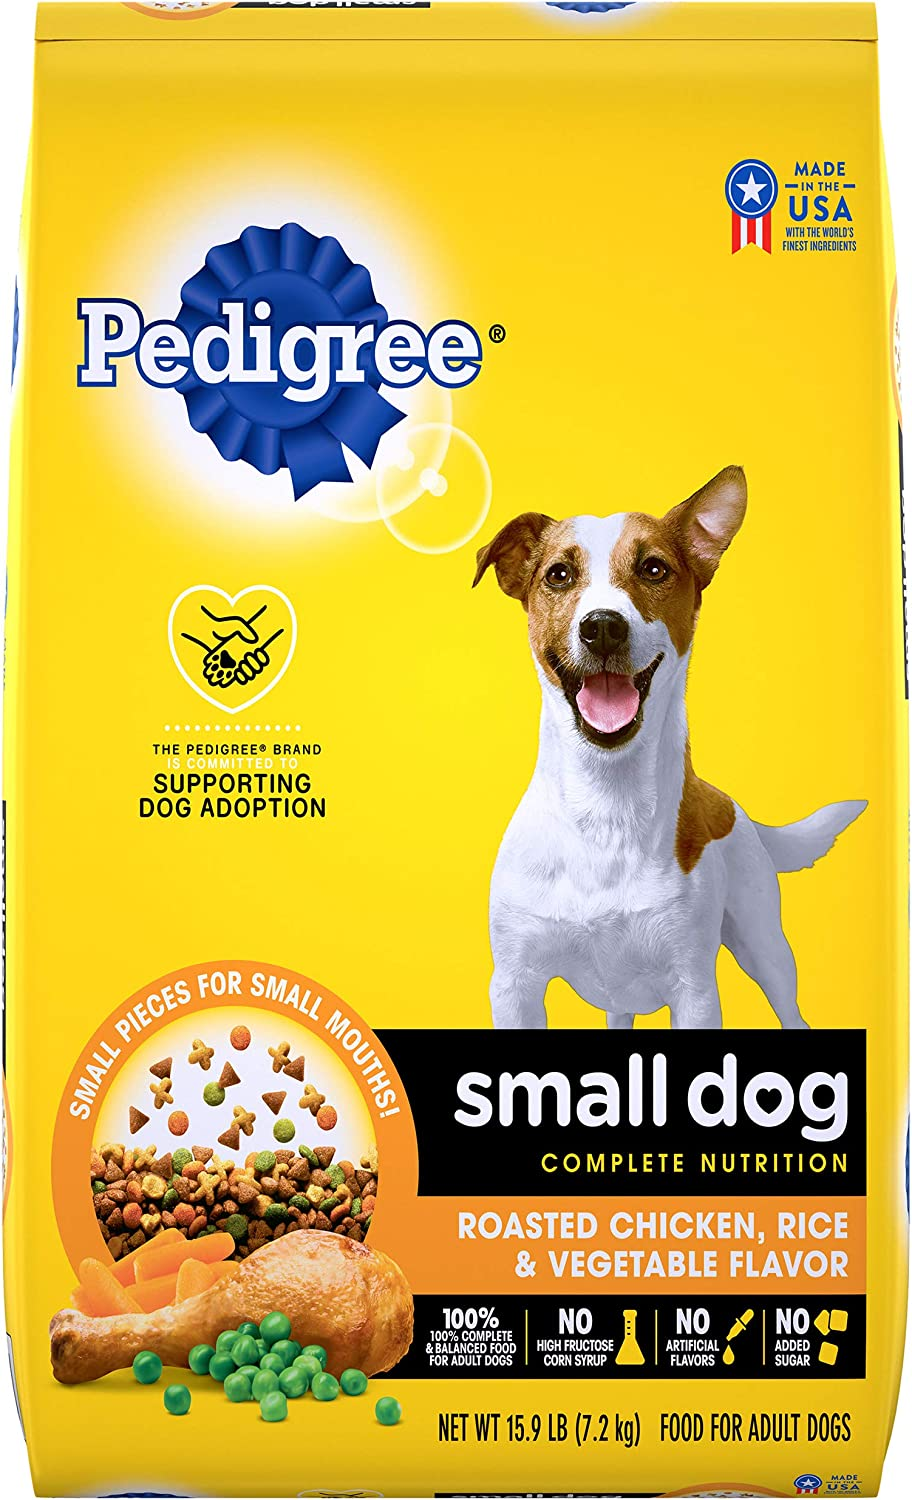 Amazon.com: PEDIGREE Small Dog Adult Complete Nutrition Roasted Chicken,  Rice & Vegetable Flavor Dry Dog Food 15.9 Pounds: Pet Supplies